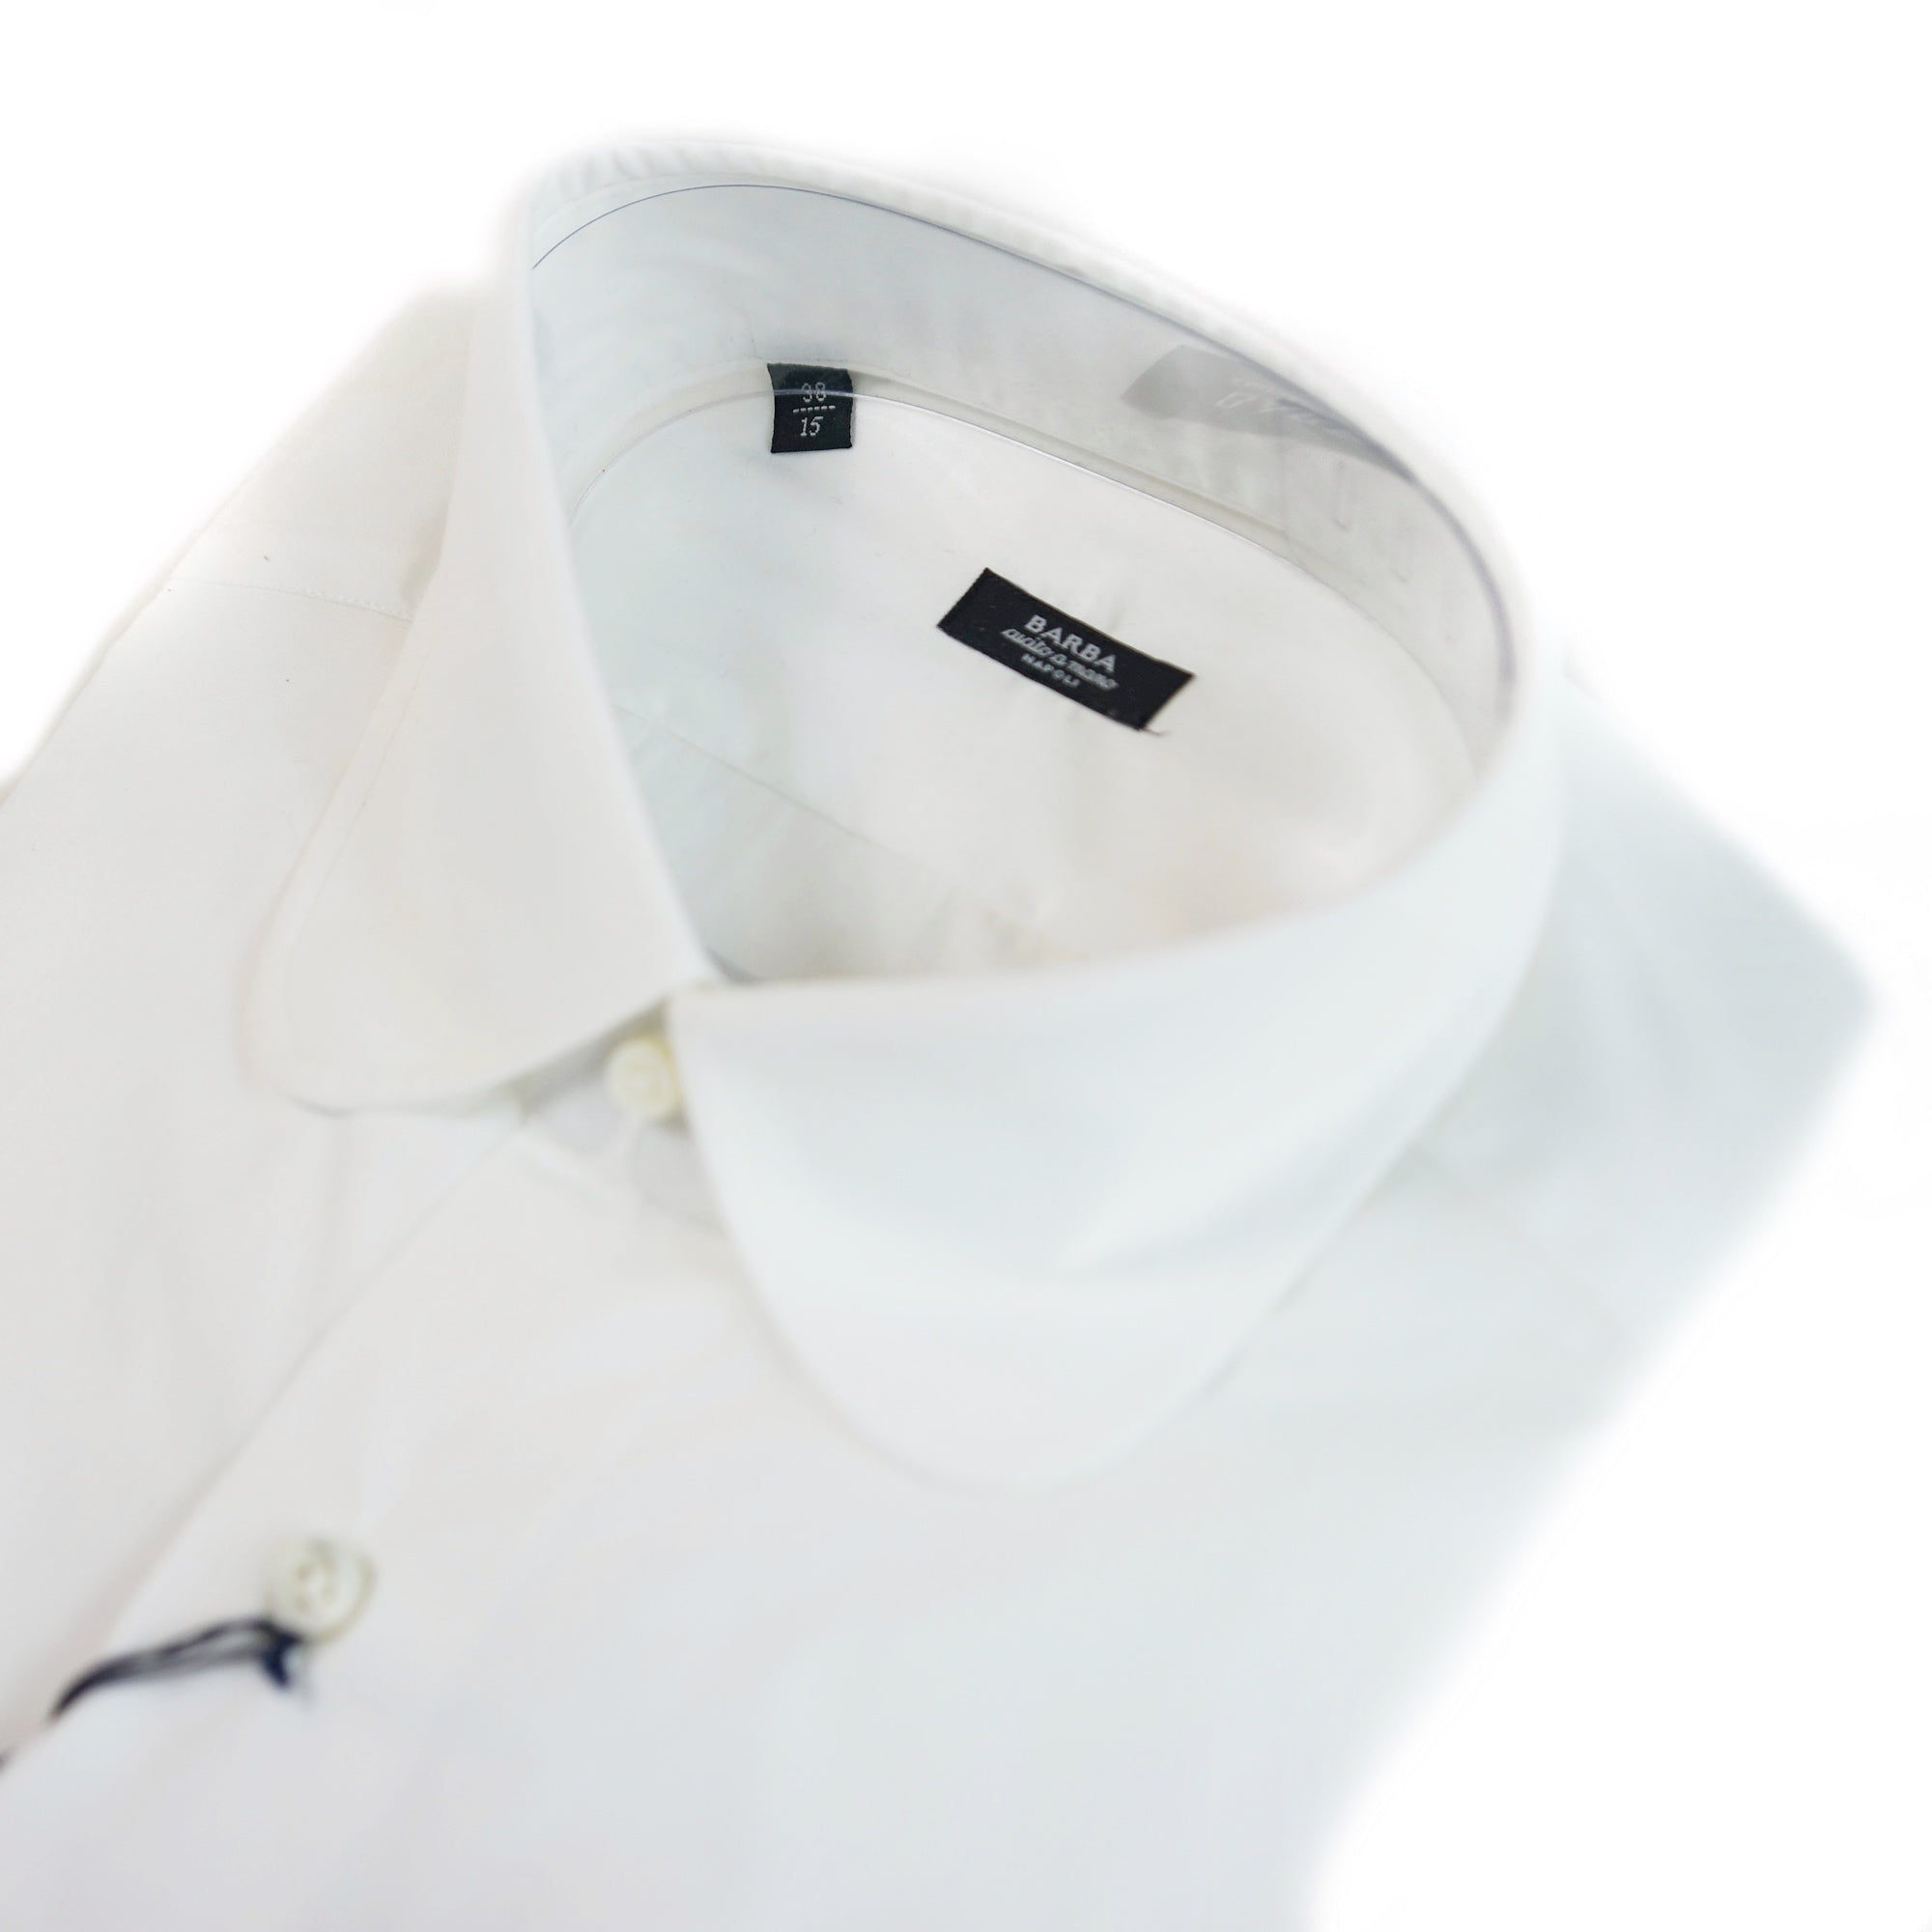 Barba White Round Collar Dress Shirt